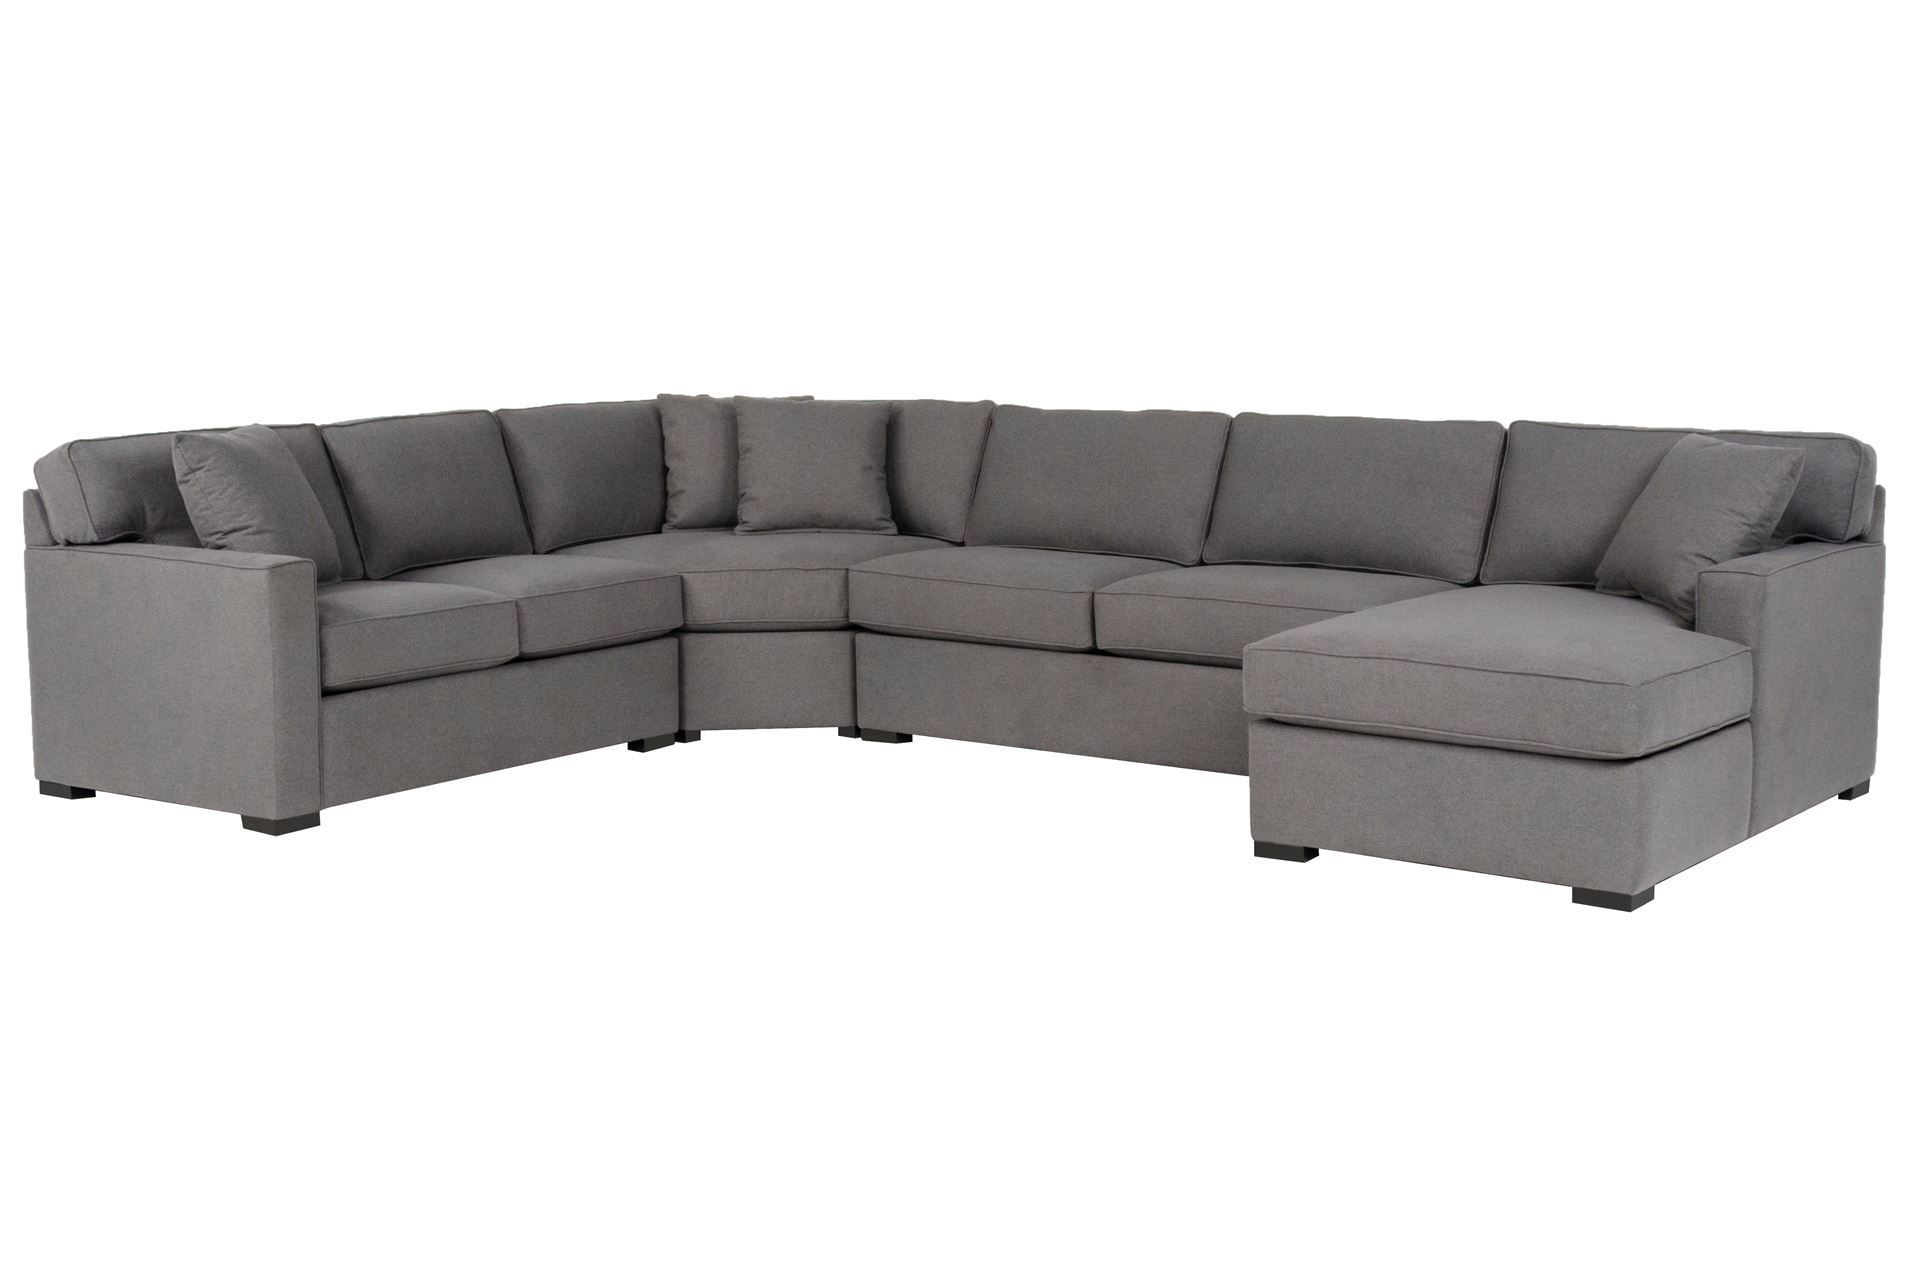 Alder 4 Piece Sectional | Dream Home - Sit Down | Pinterest | Living throughout Turdur 2 Piece Sectionals With Raf Loveseat (Image 1 of 30)